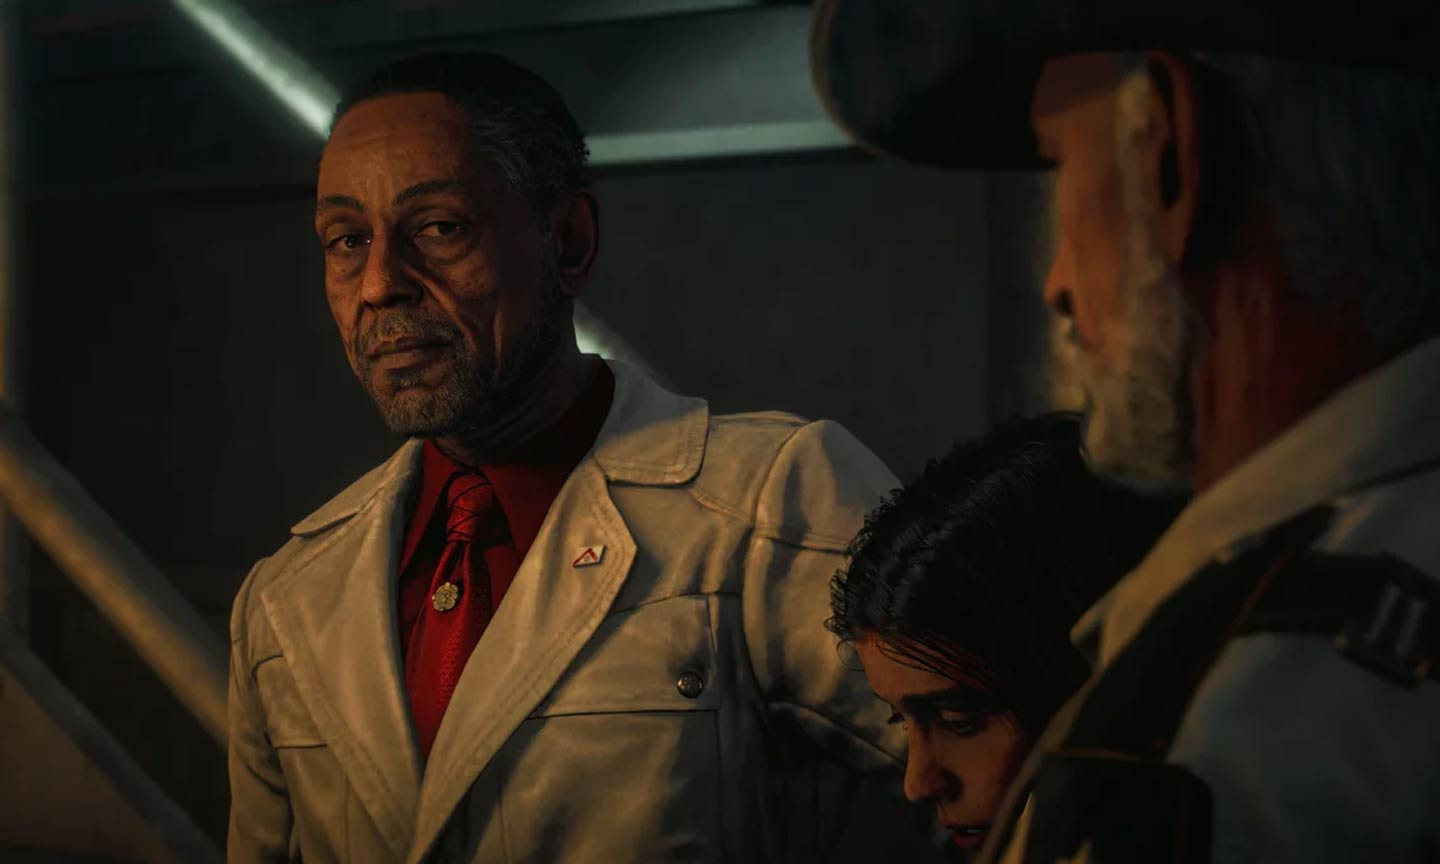 Giancarlo Espositos Charakter in Far Cry 6. - (C) Ubisoft